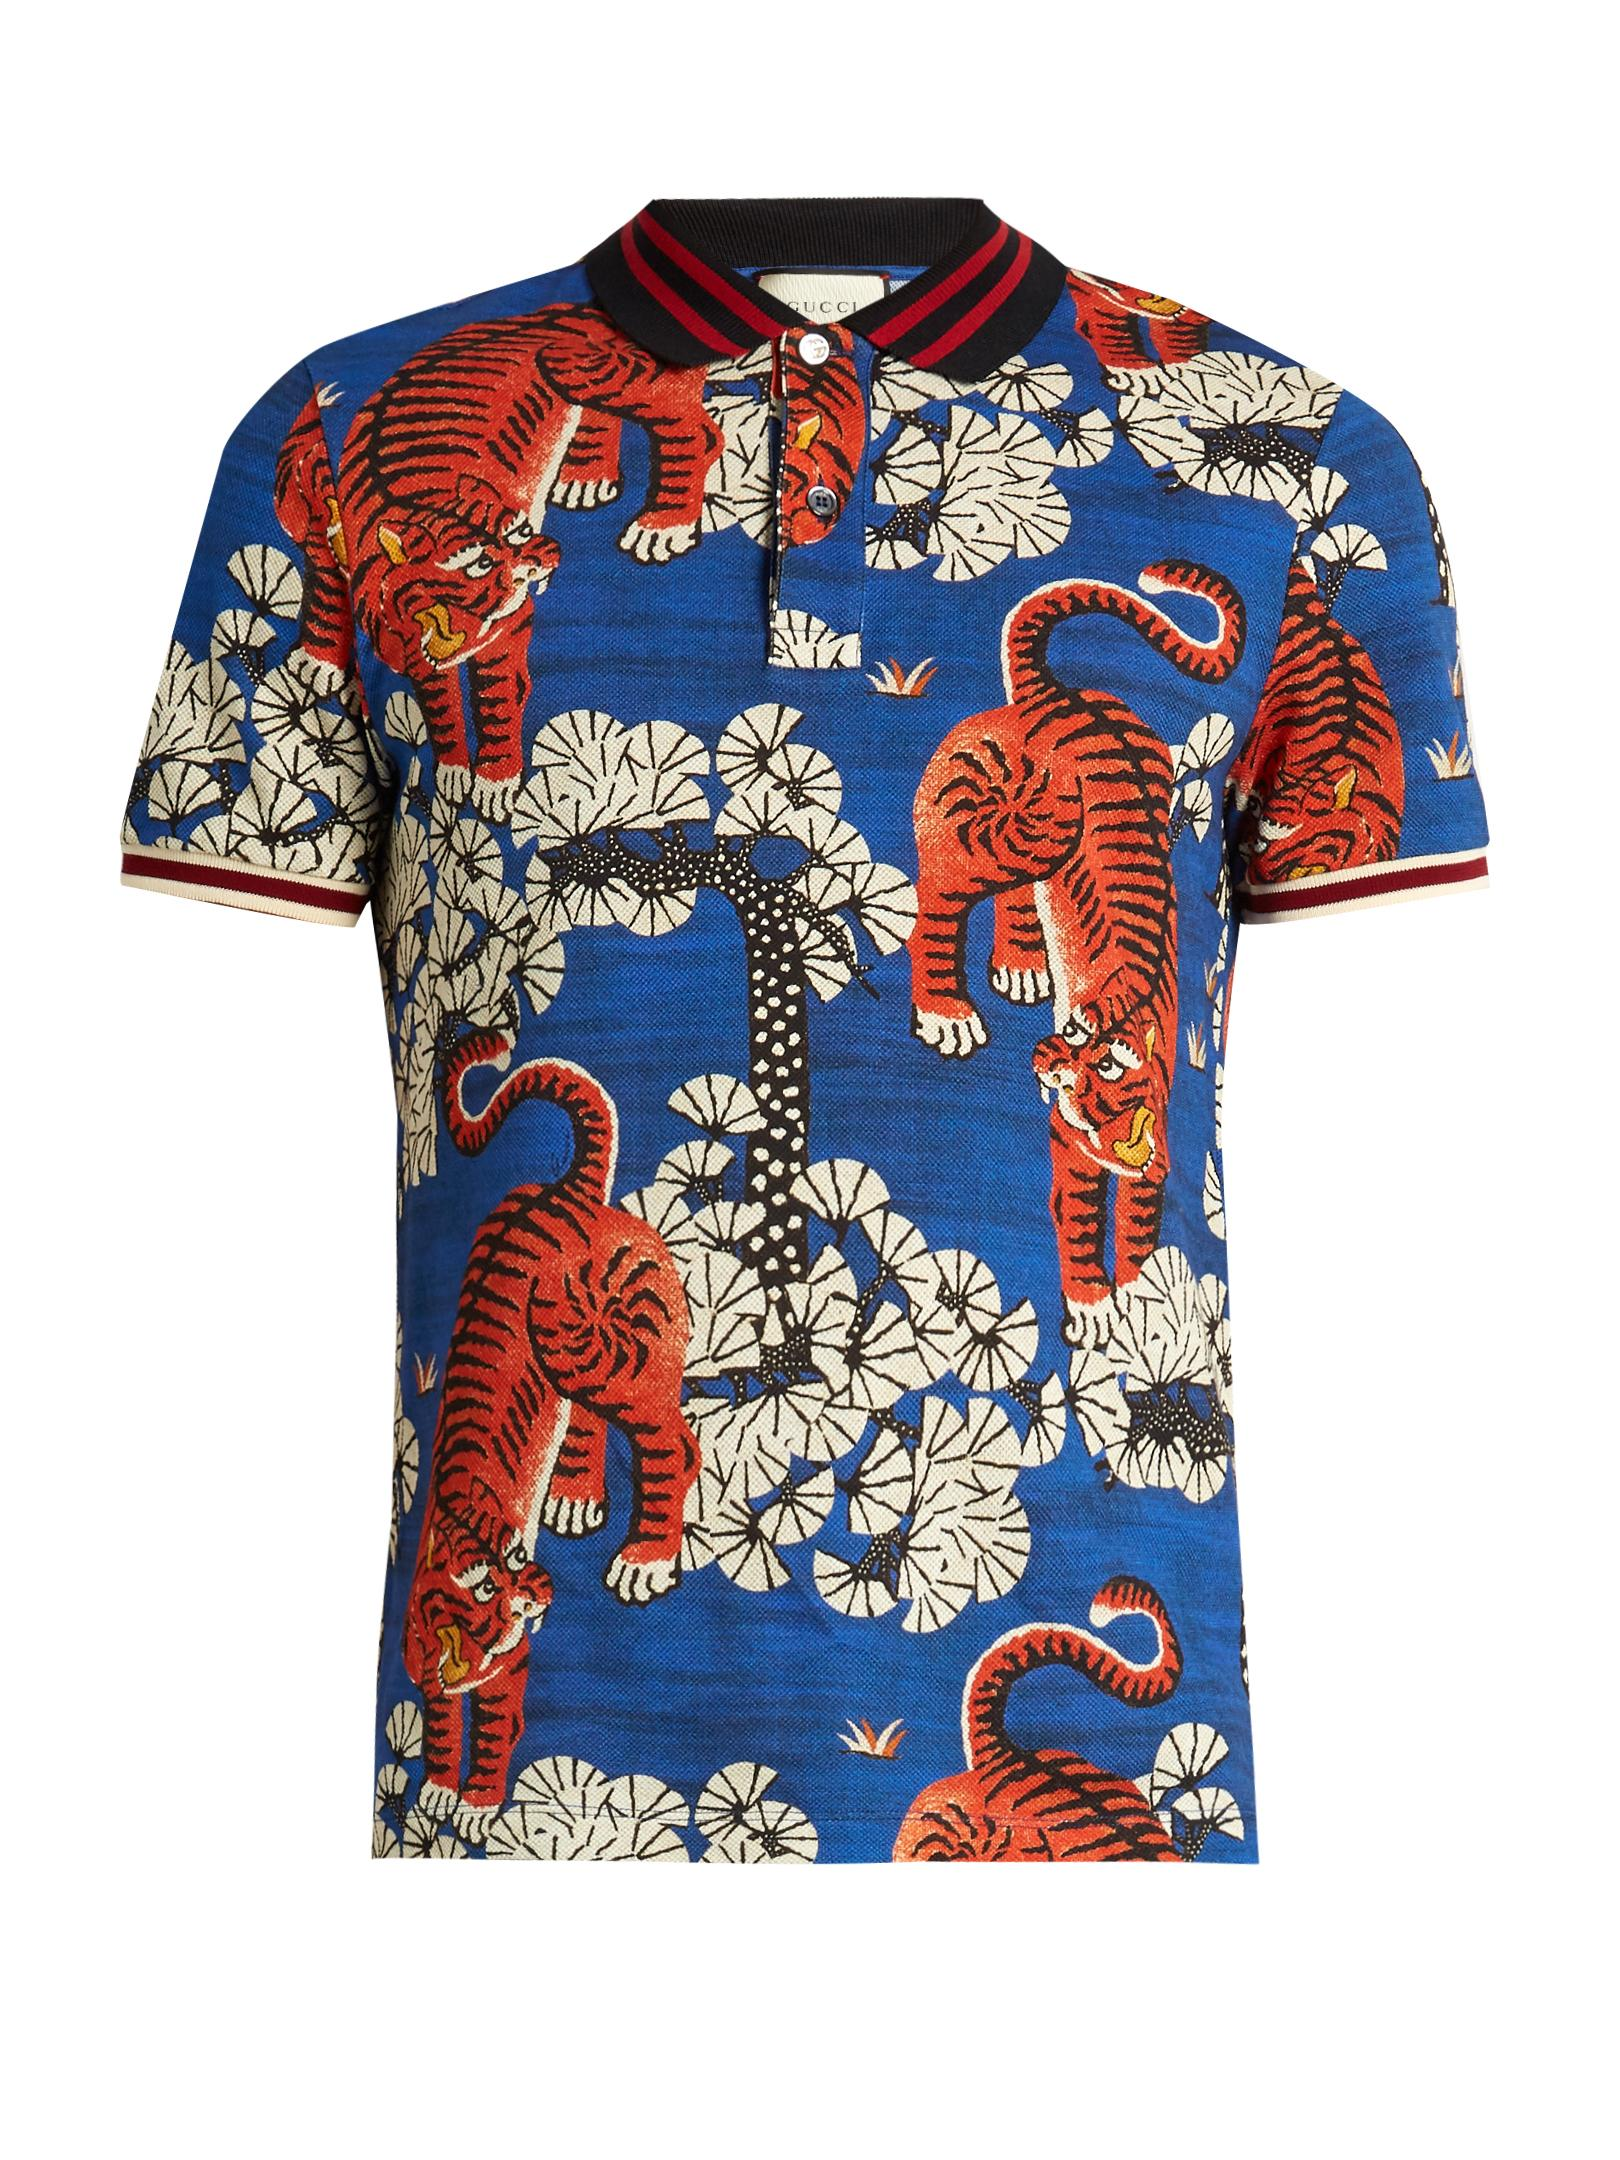 b55aa9fea Gucci Bengal Tiger Polo Shirt - Best Picture Tiger In The World